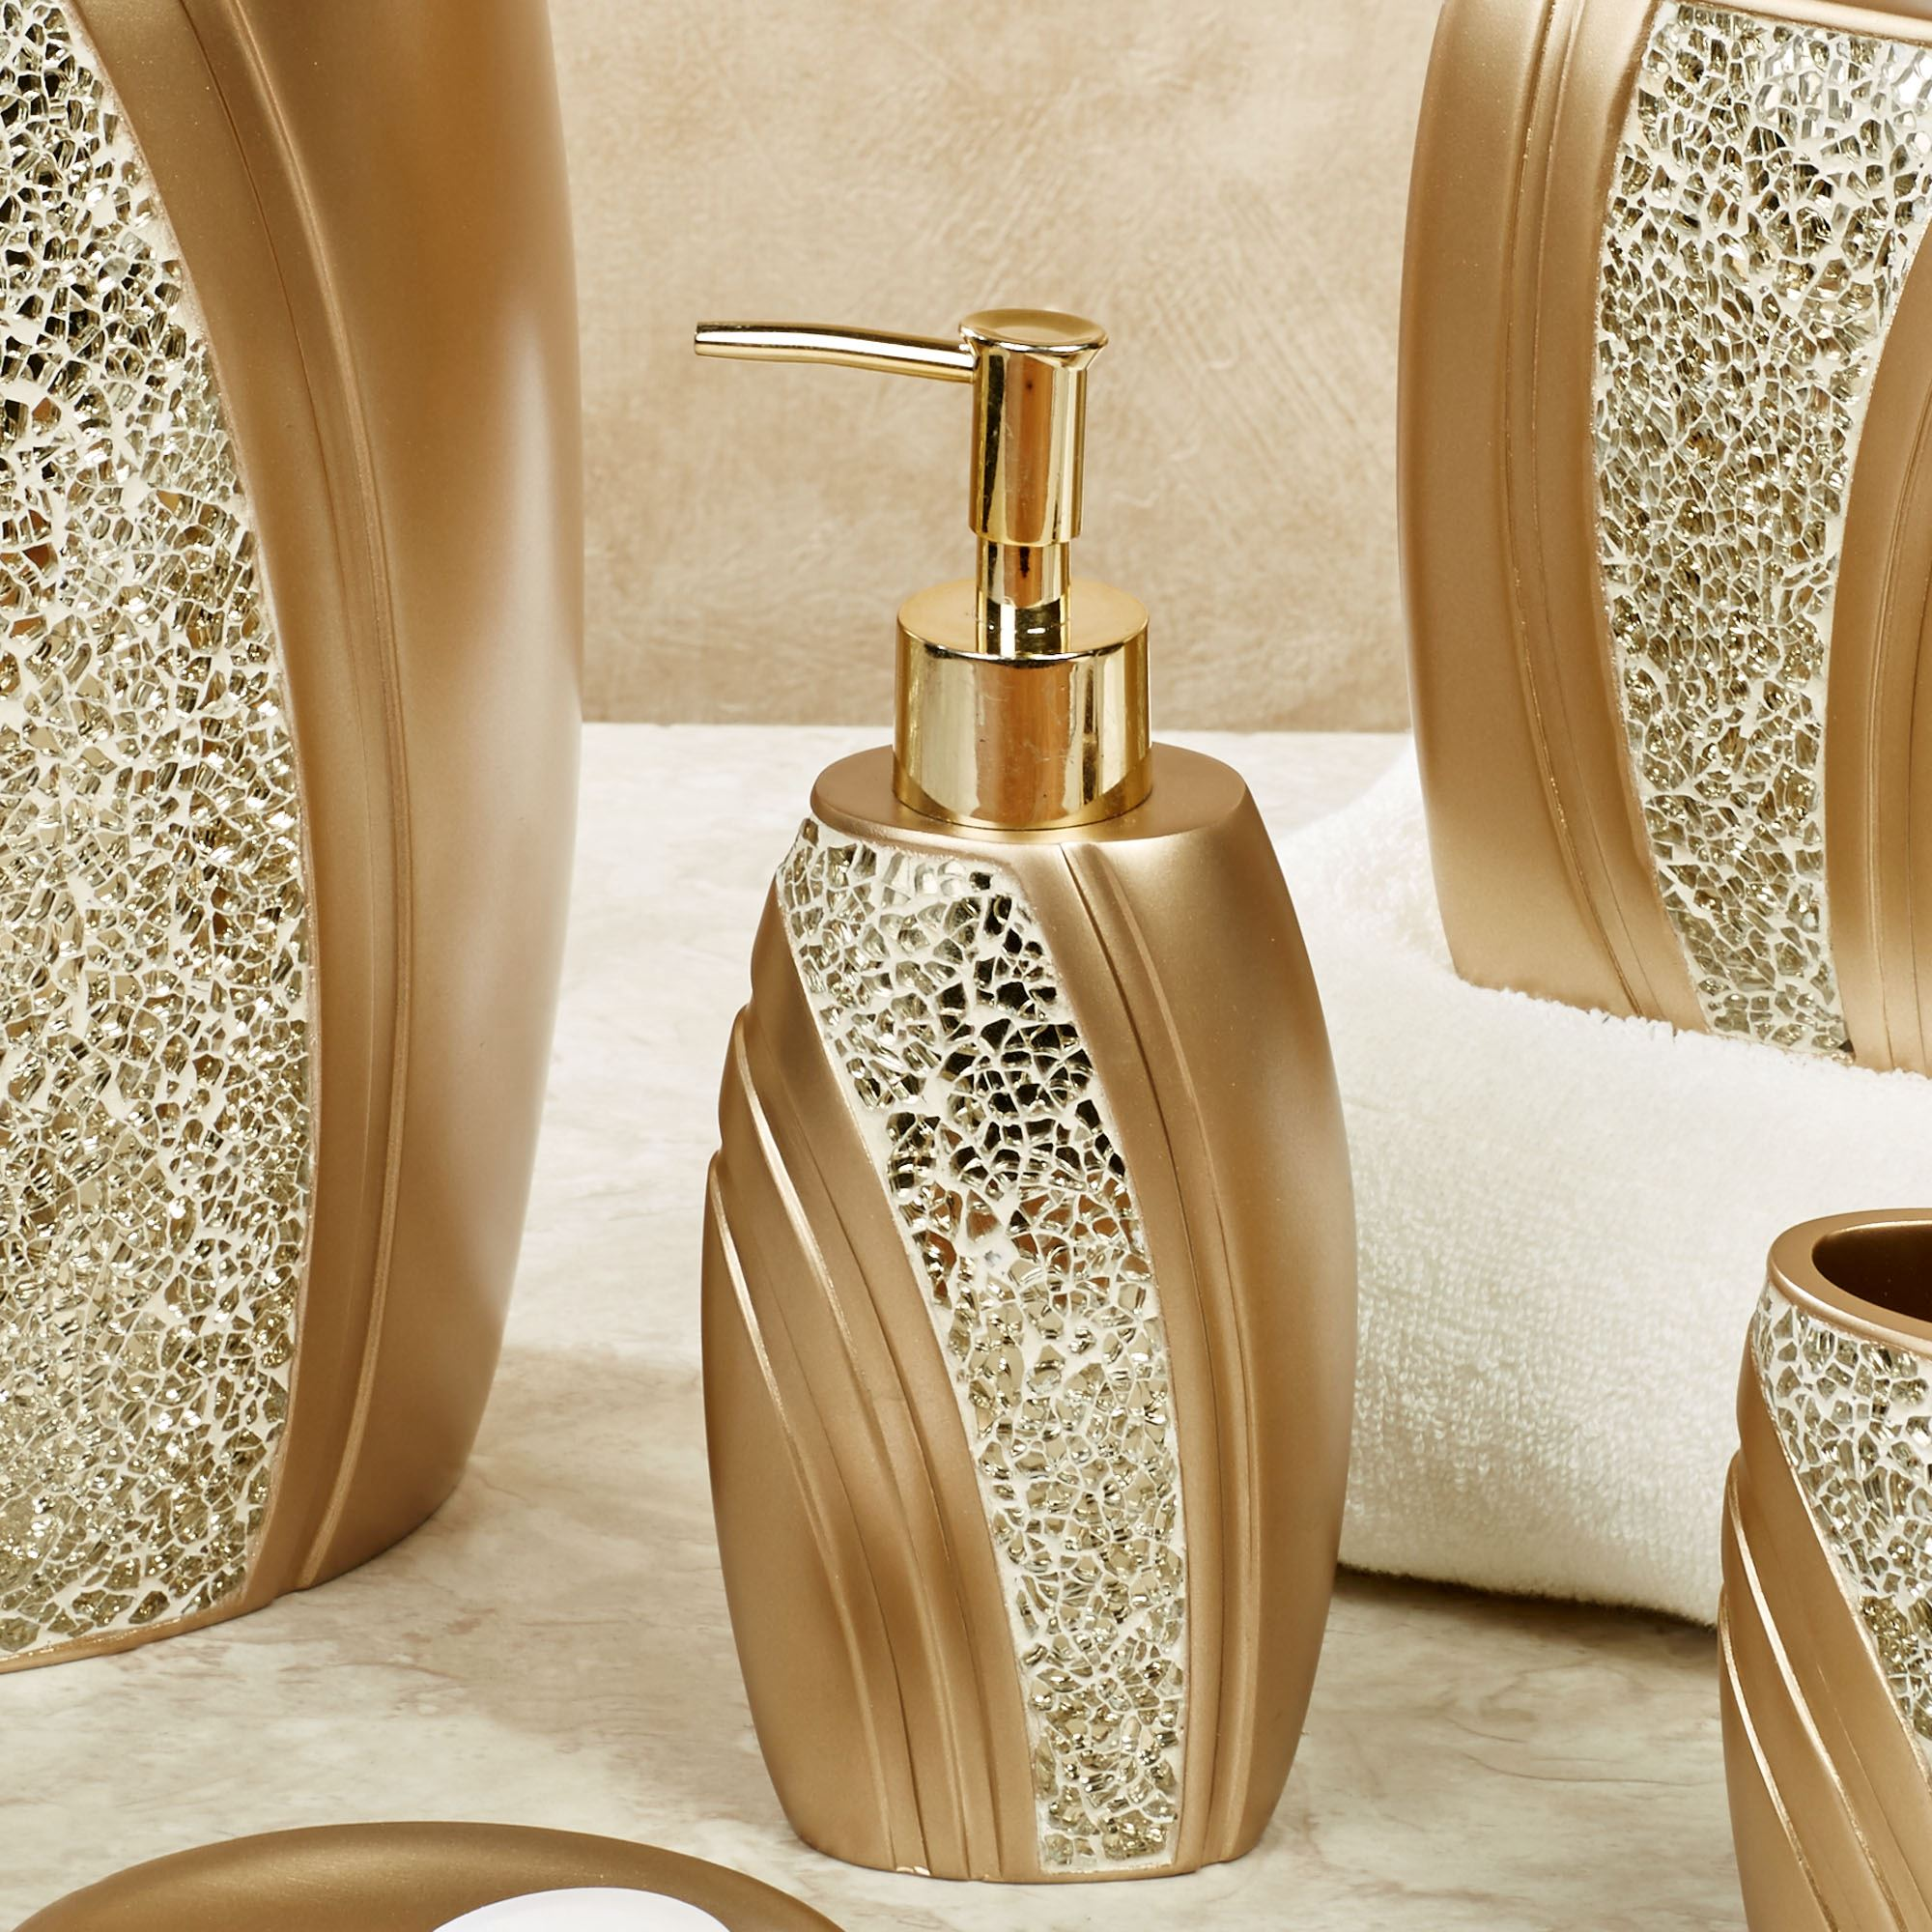 very gold mosaic bathroom accessories. Glamour Lotion Soap Dispenser Champagne Gold Mosaic Bath Accessories